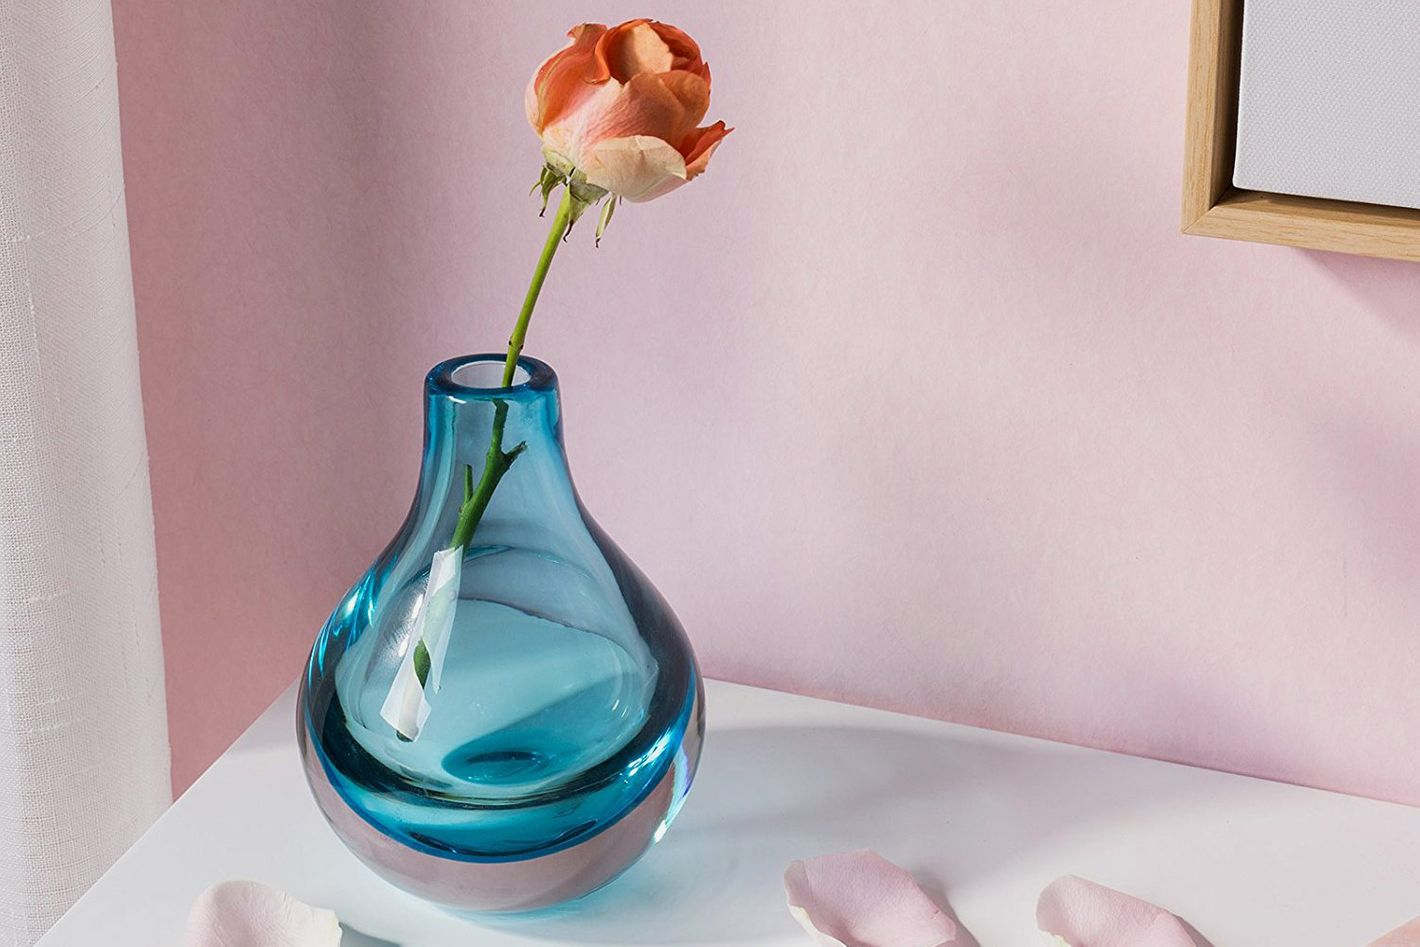 CASAMOTION Home Decor Accent Vase Hand Blown Art Solid Color Glass Bud Vase, Blue